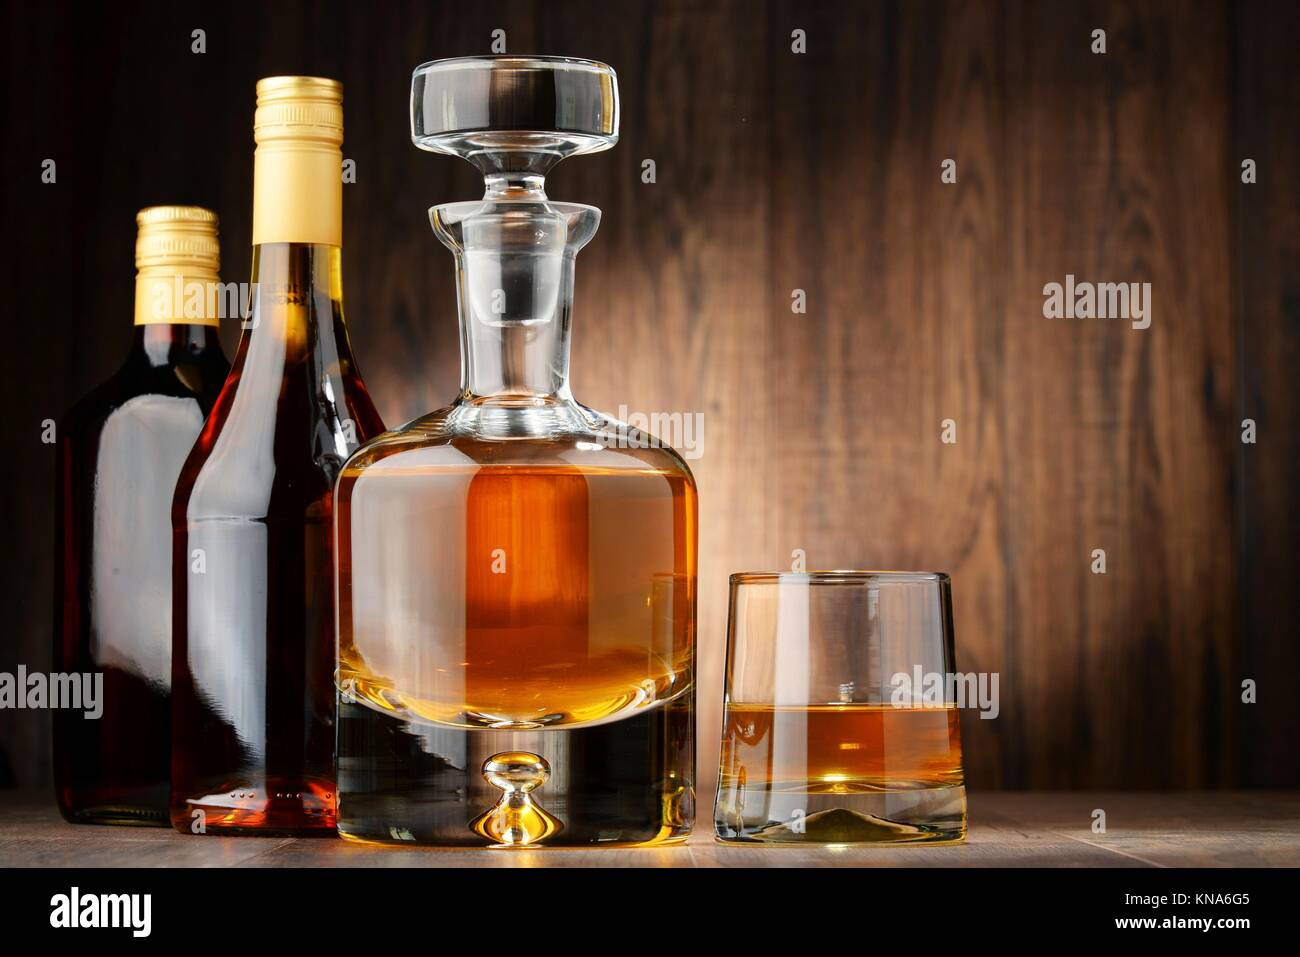 Composition with bottles of assorted alcoholic beverages and glass of whisky. - Stock Image